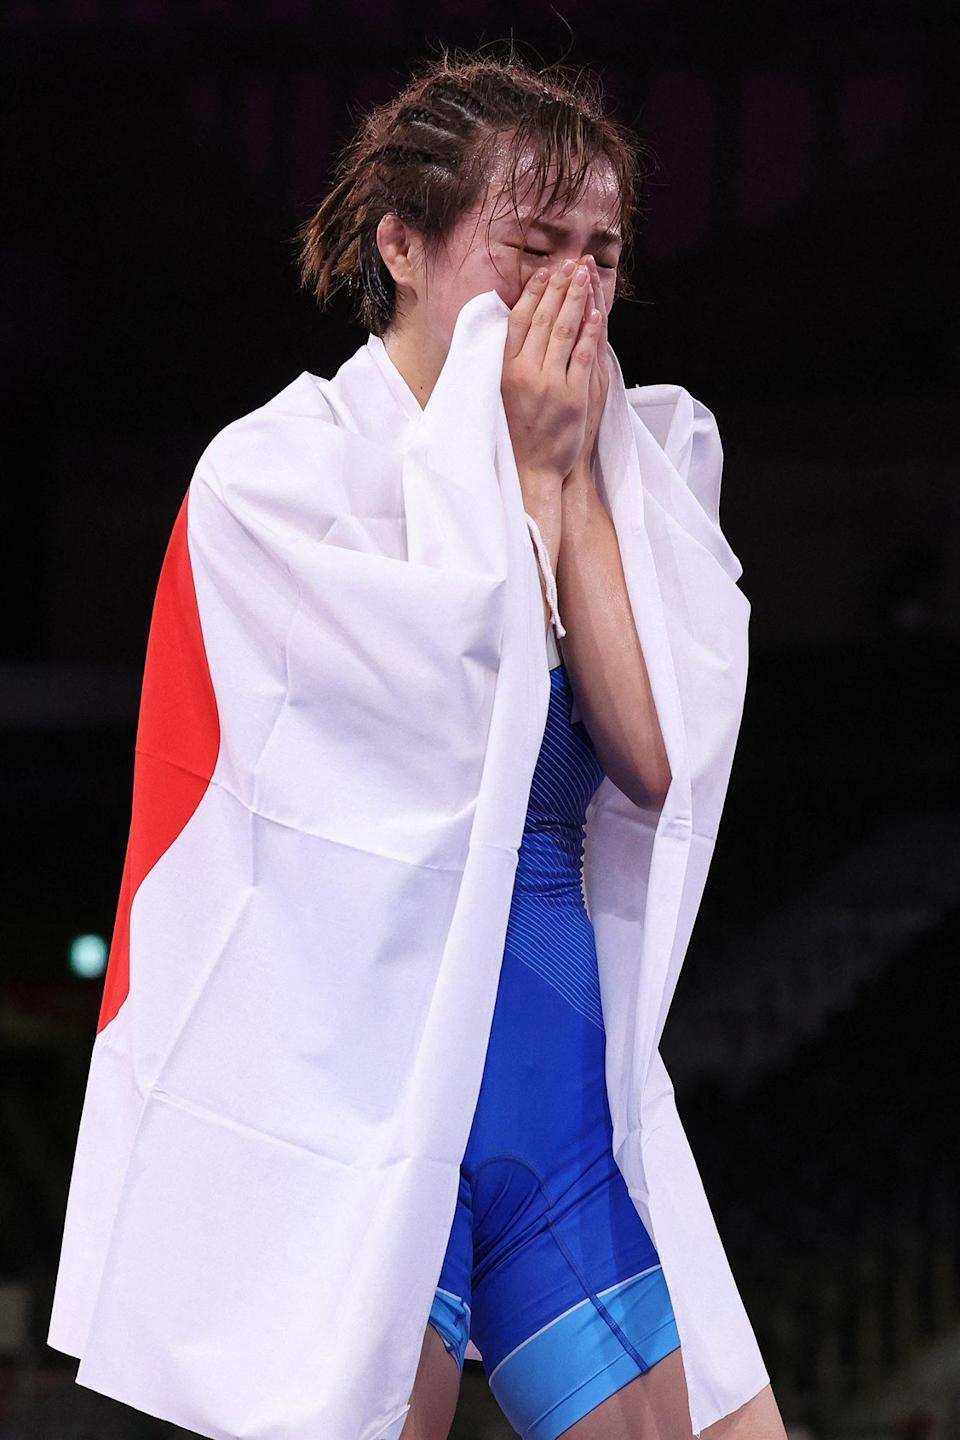 <p>Japan's Yukako Kawai gets emotional after winning her gold medal in the women's freestyle 62kg wrestling competition at the Makuhari Messe on August 4.</p>